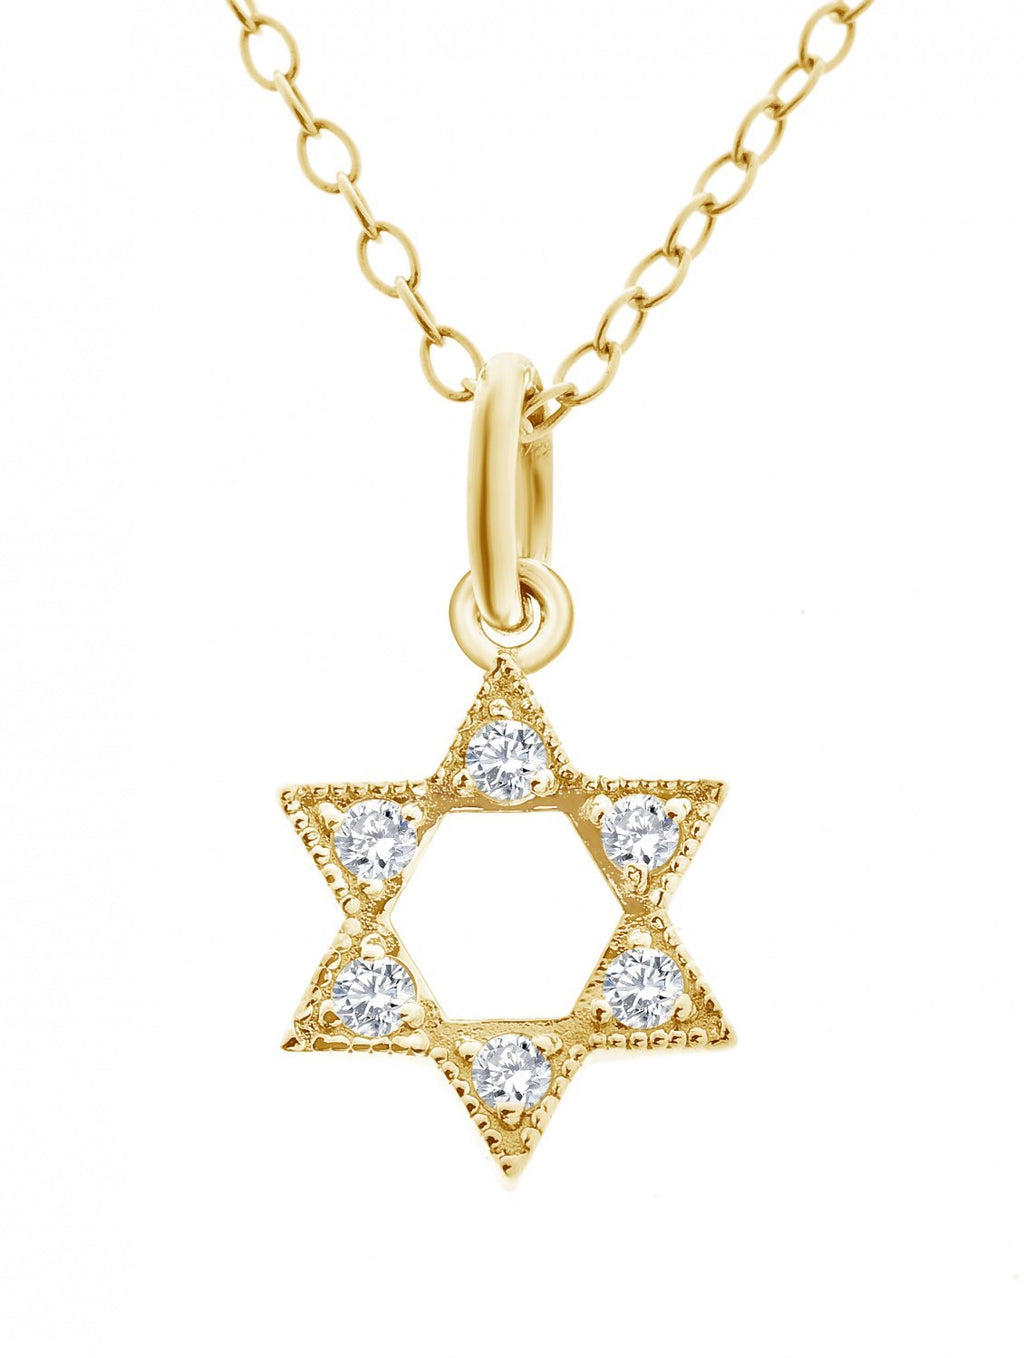 Diamond Star Necklace + Bat Mitzah Gift - Alef Bet Jewelry by Paula